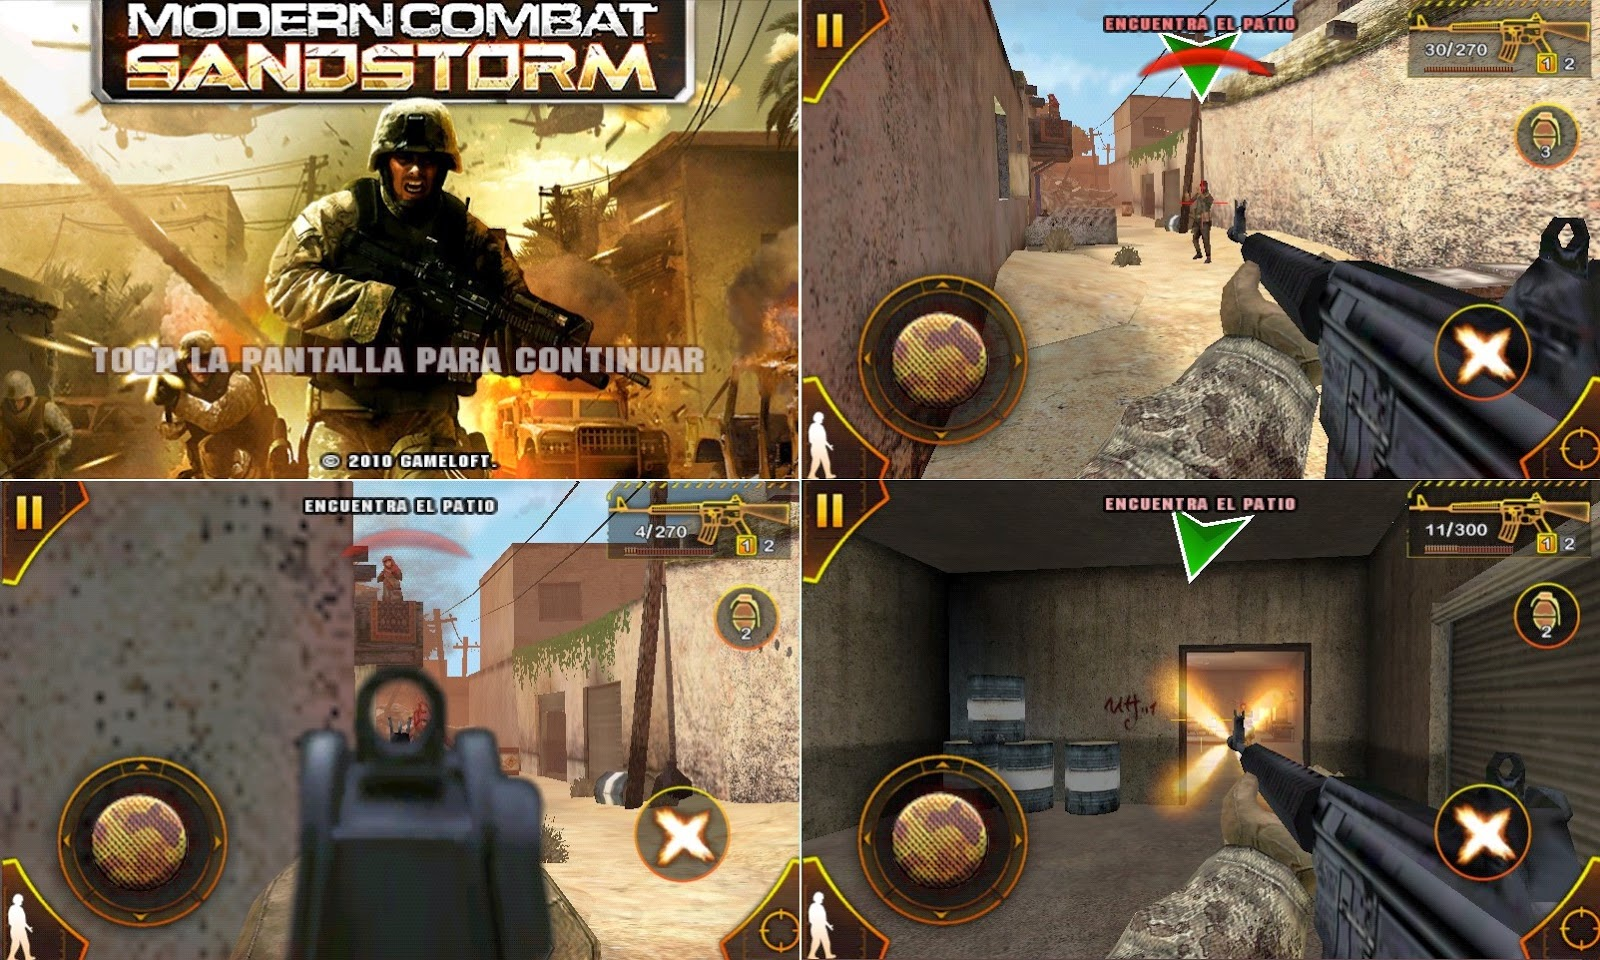 Related wallpapers modern combat 5 for android apkobb in rar